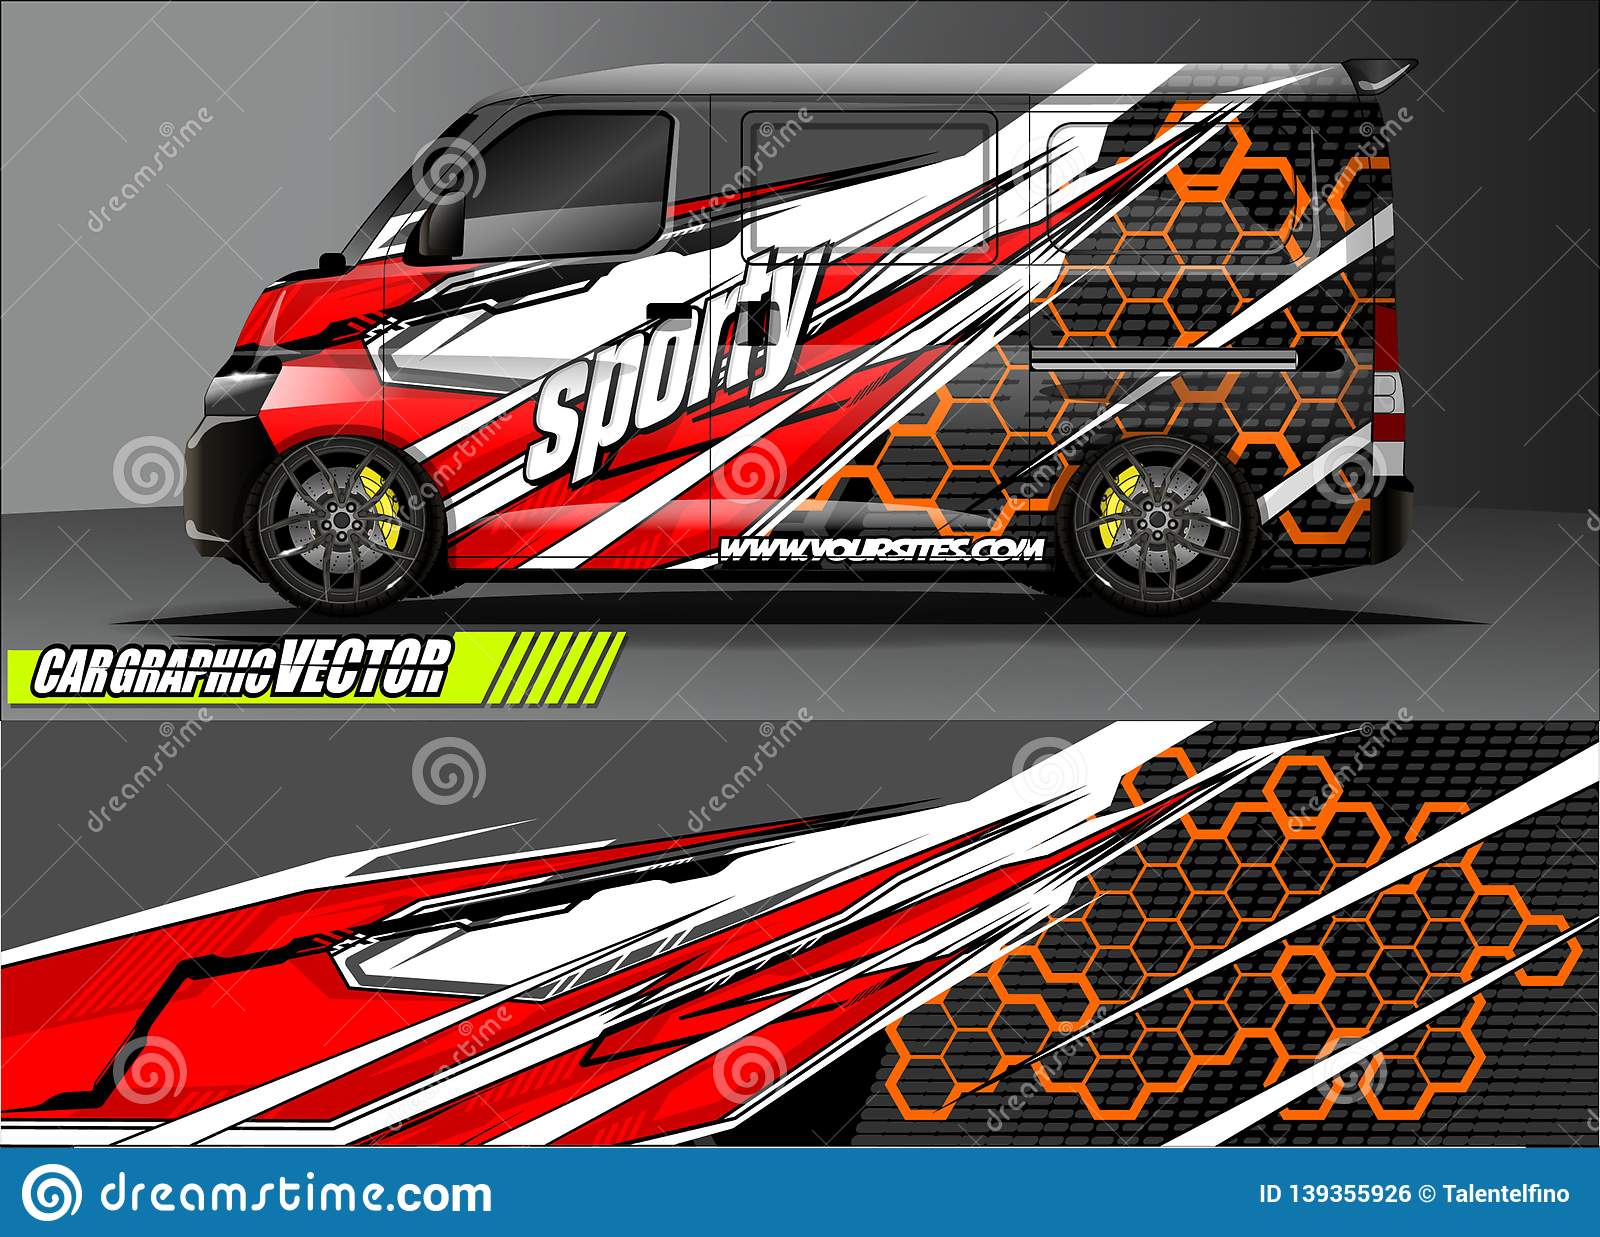 Van livery graphic abstract grunge background design for vehicle vinyl wrap and car branding